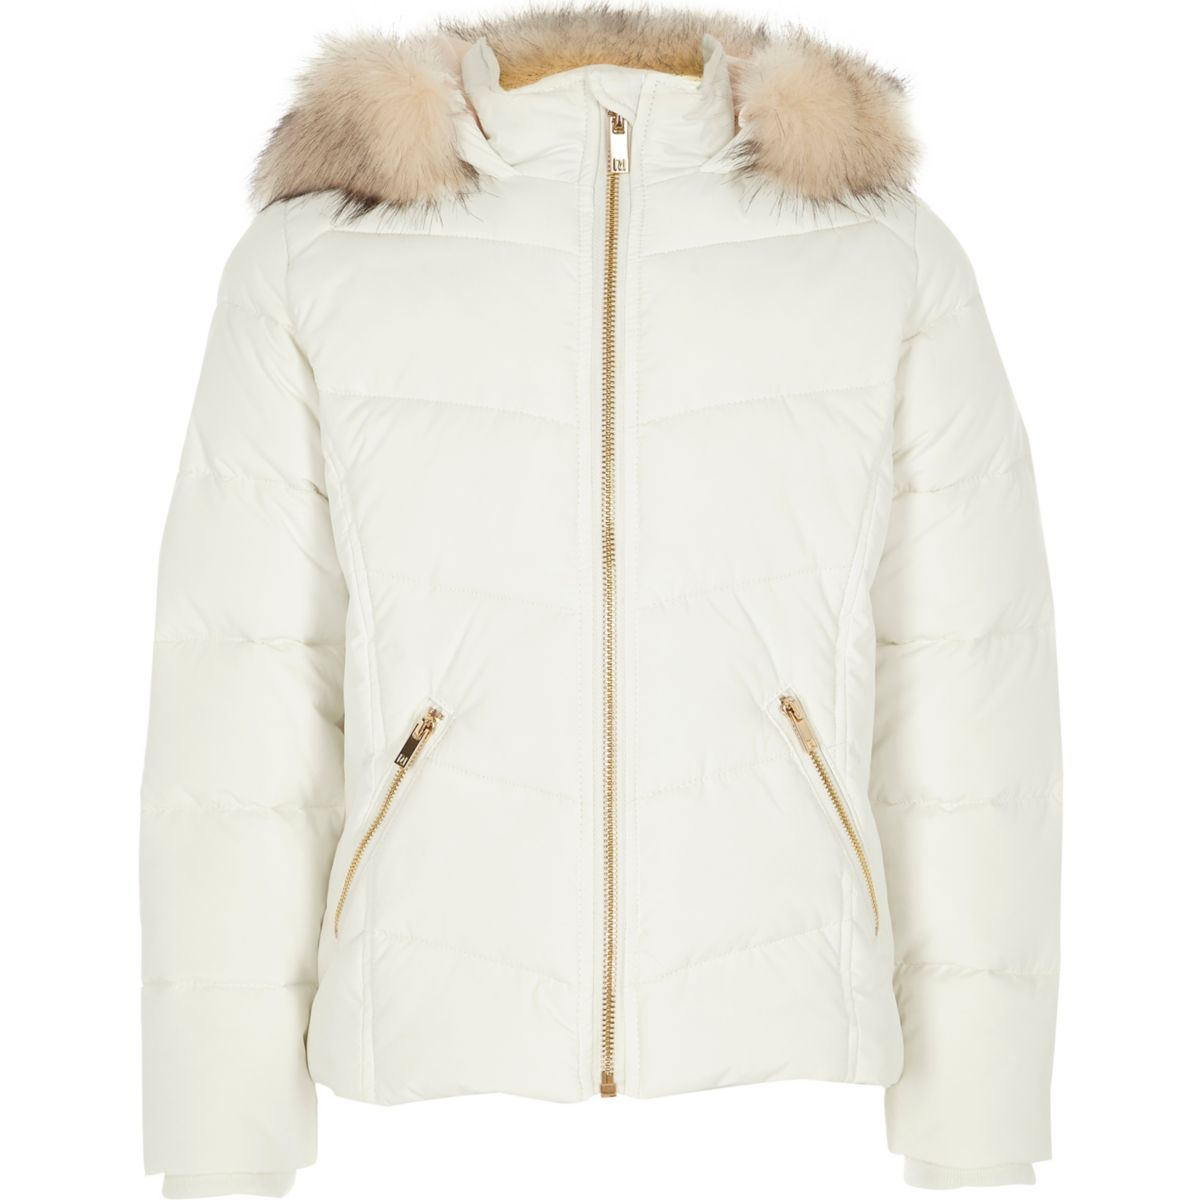 Girls white faux fur hooded puffer jacket - Coats & Jackets - Sale ...